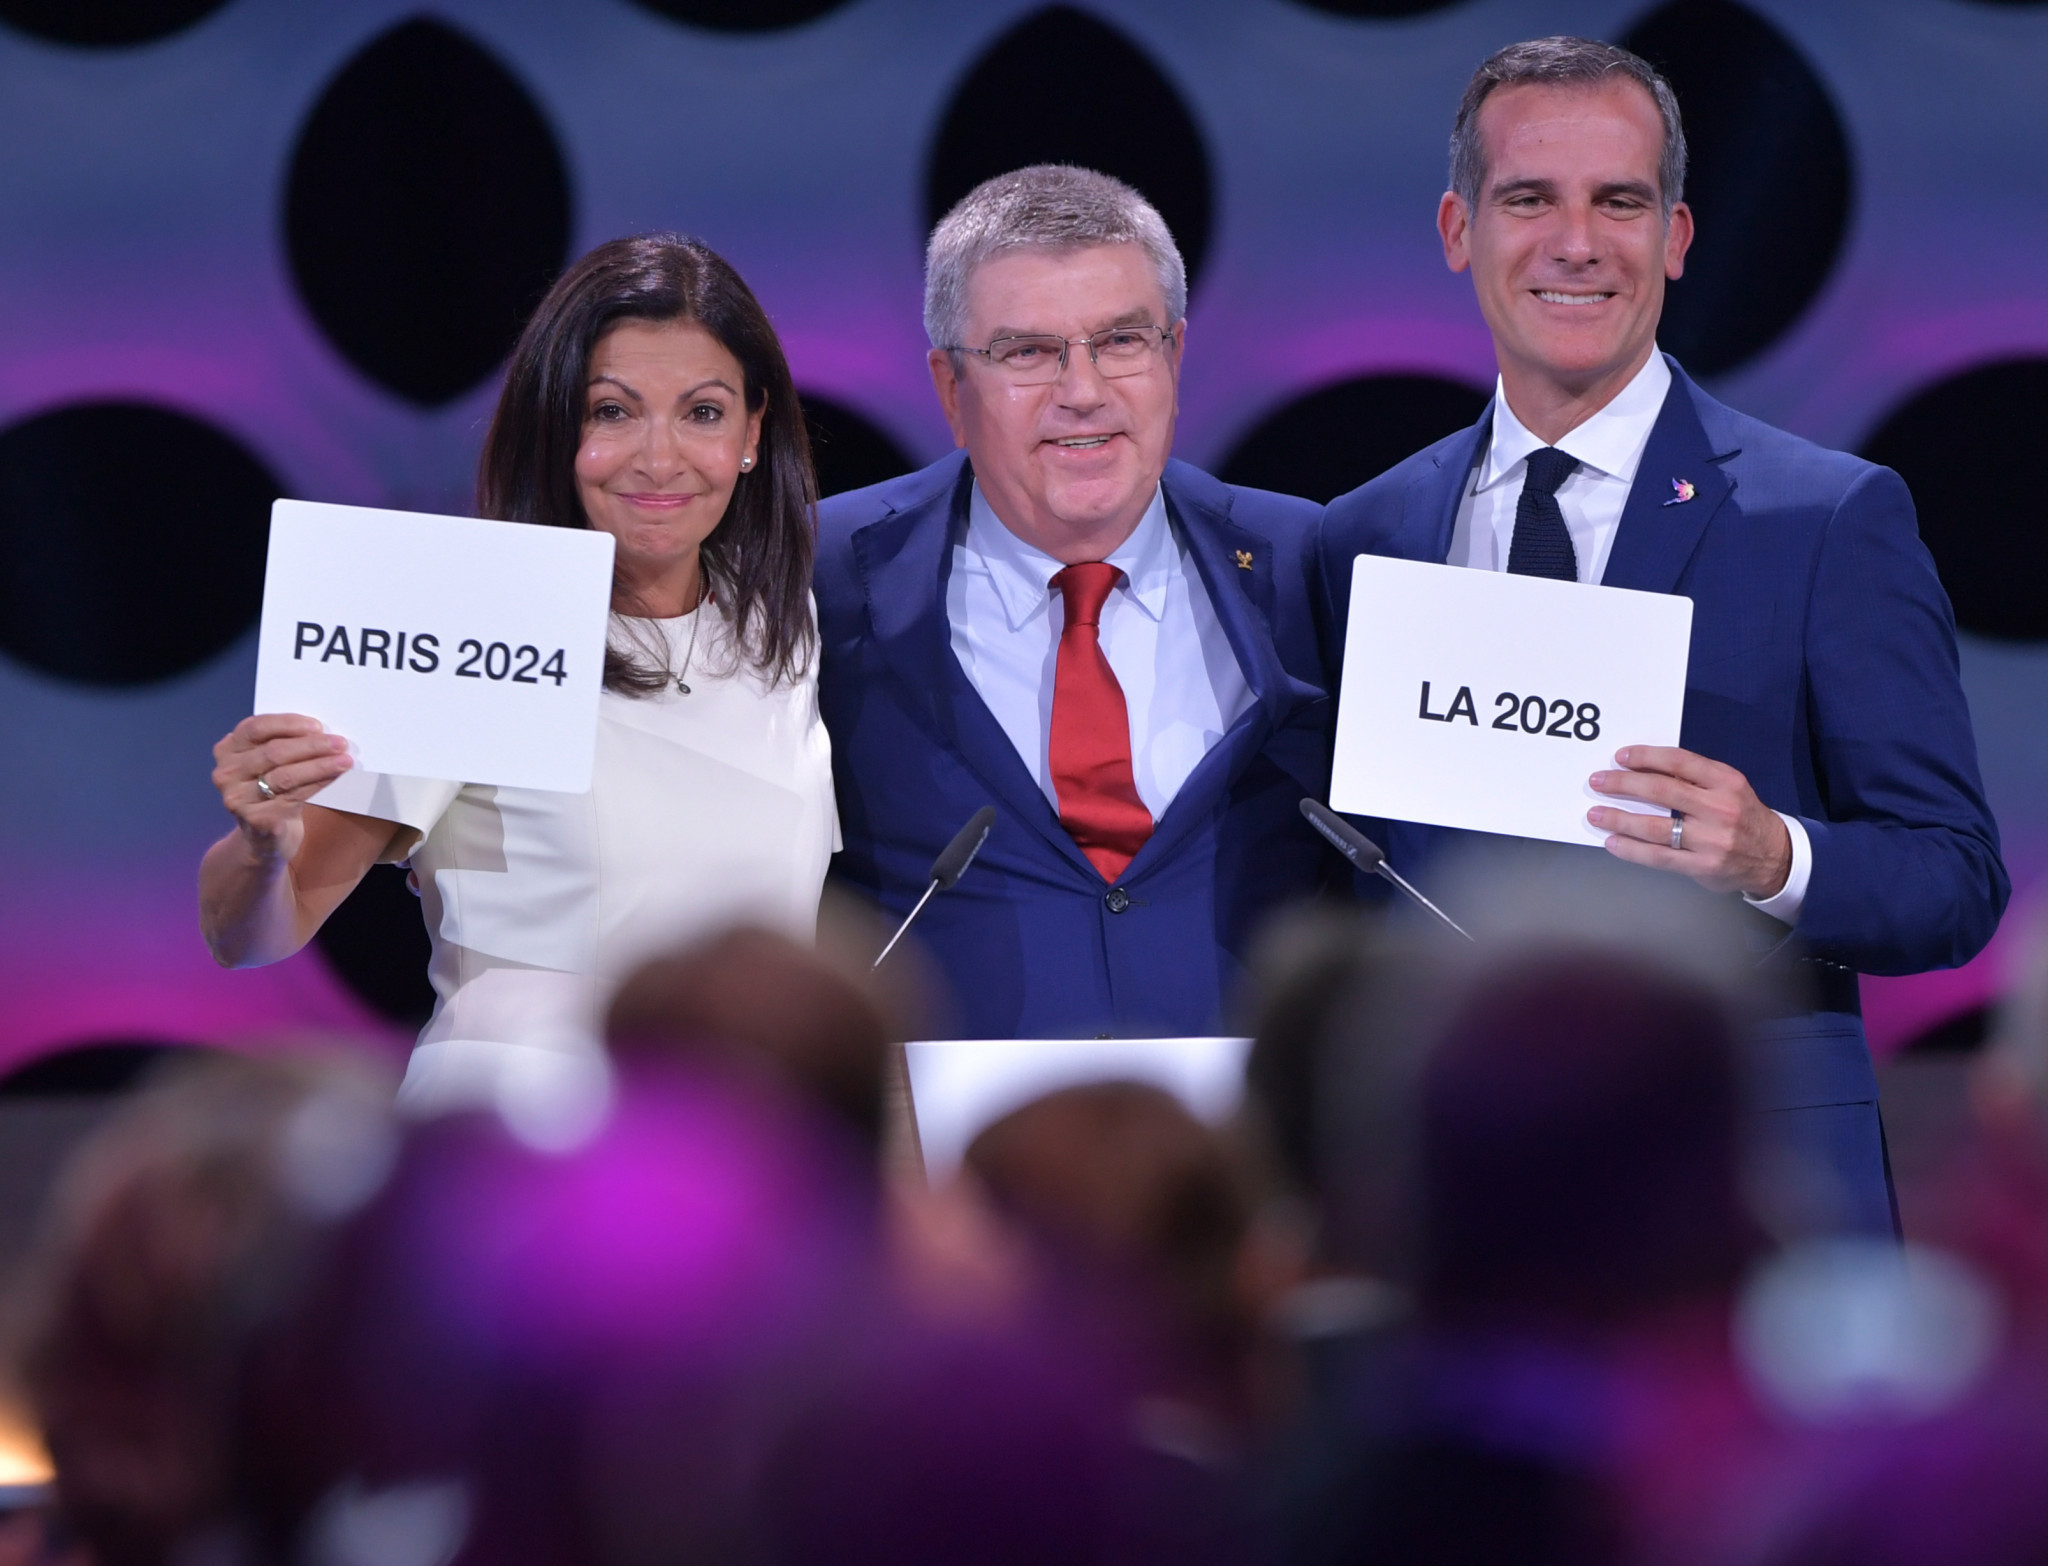 The double award of the Summer Olympics to Paris and Los Angeles concluded another accident-prone bidding process ©Getty Images